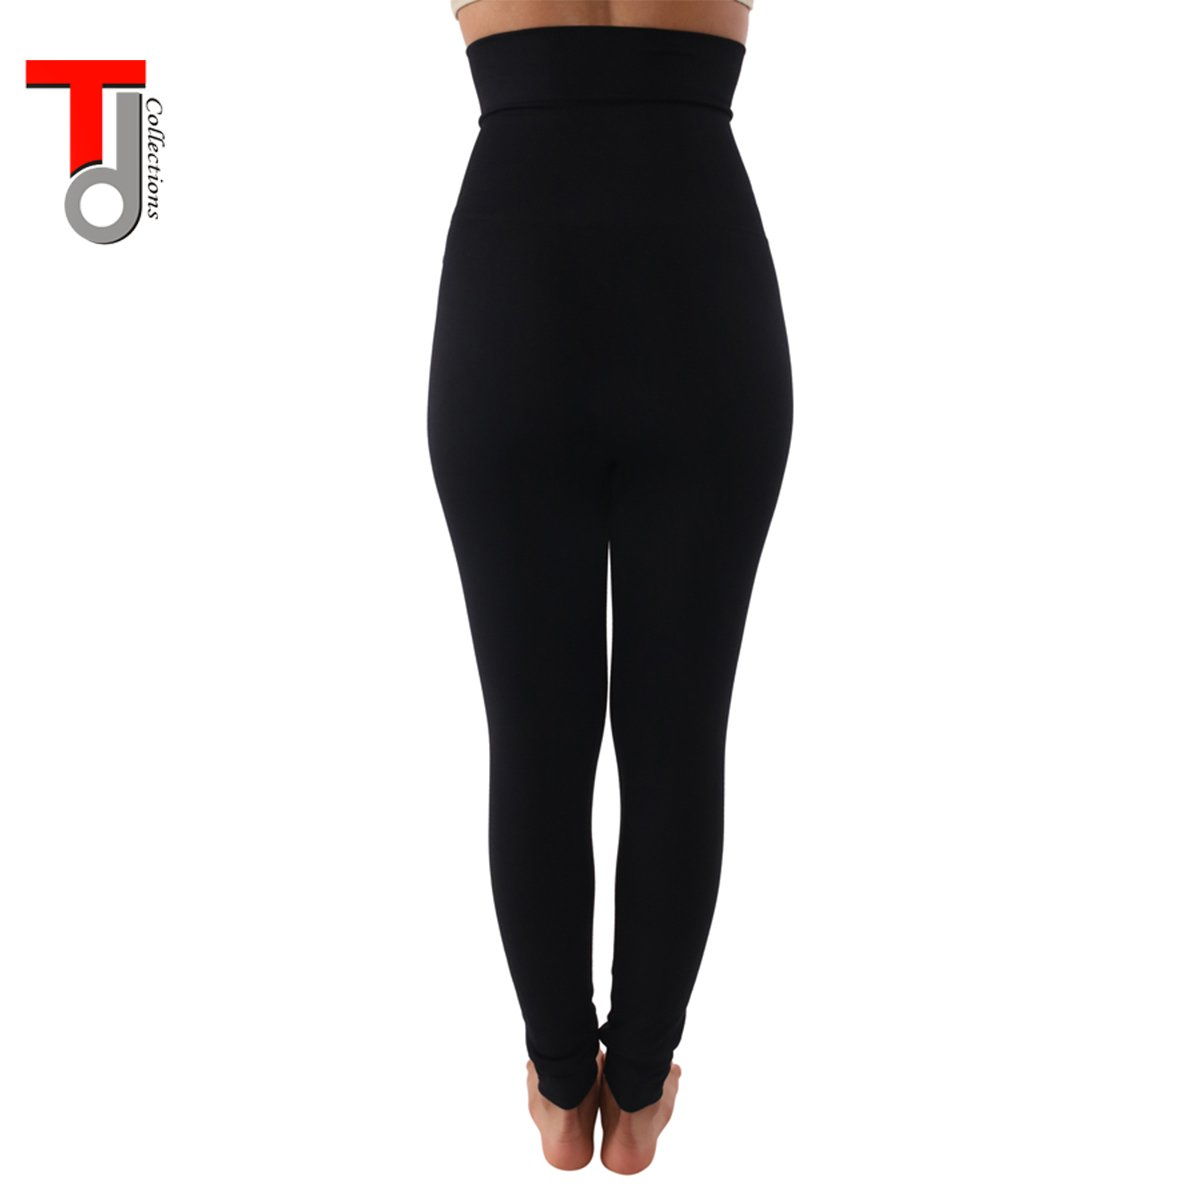 39992d91e13 TD Collections Women s High Waist Fleece Lined Leggings - Buttery Soft  Stretchy Slimming Pants - Tummy Control Thick Tights - Black at Amazon  Women s ...